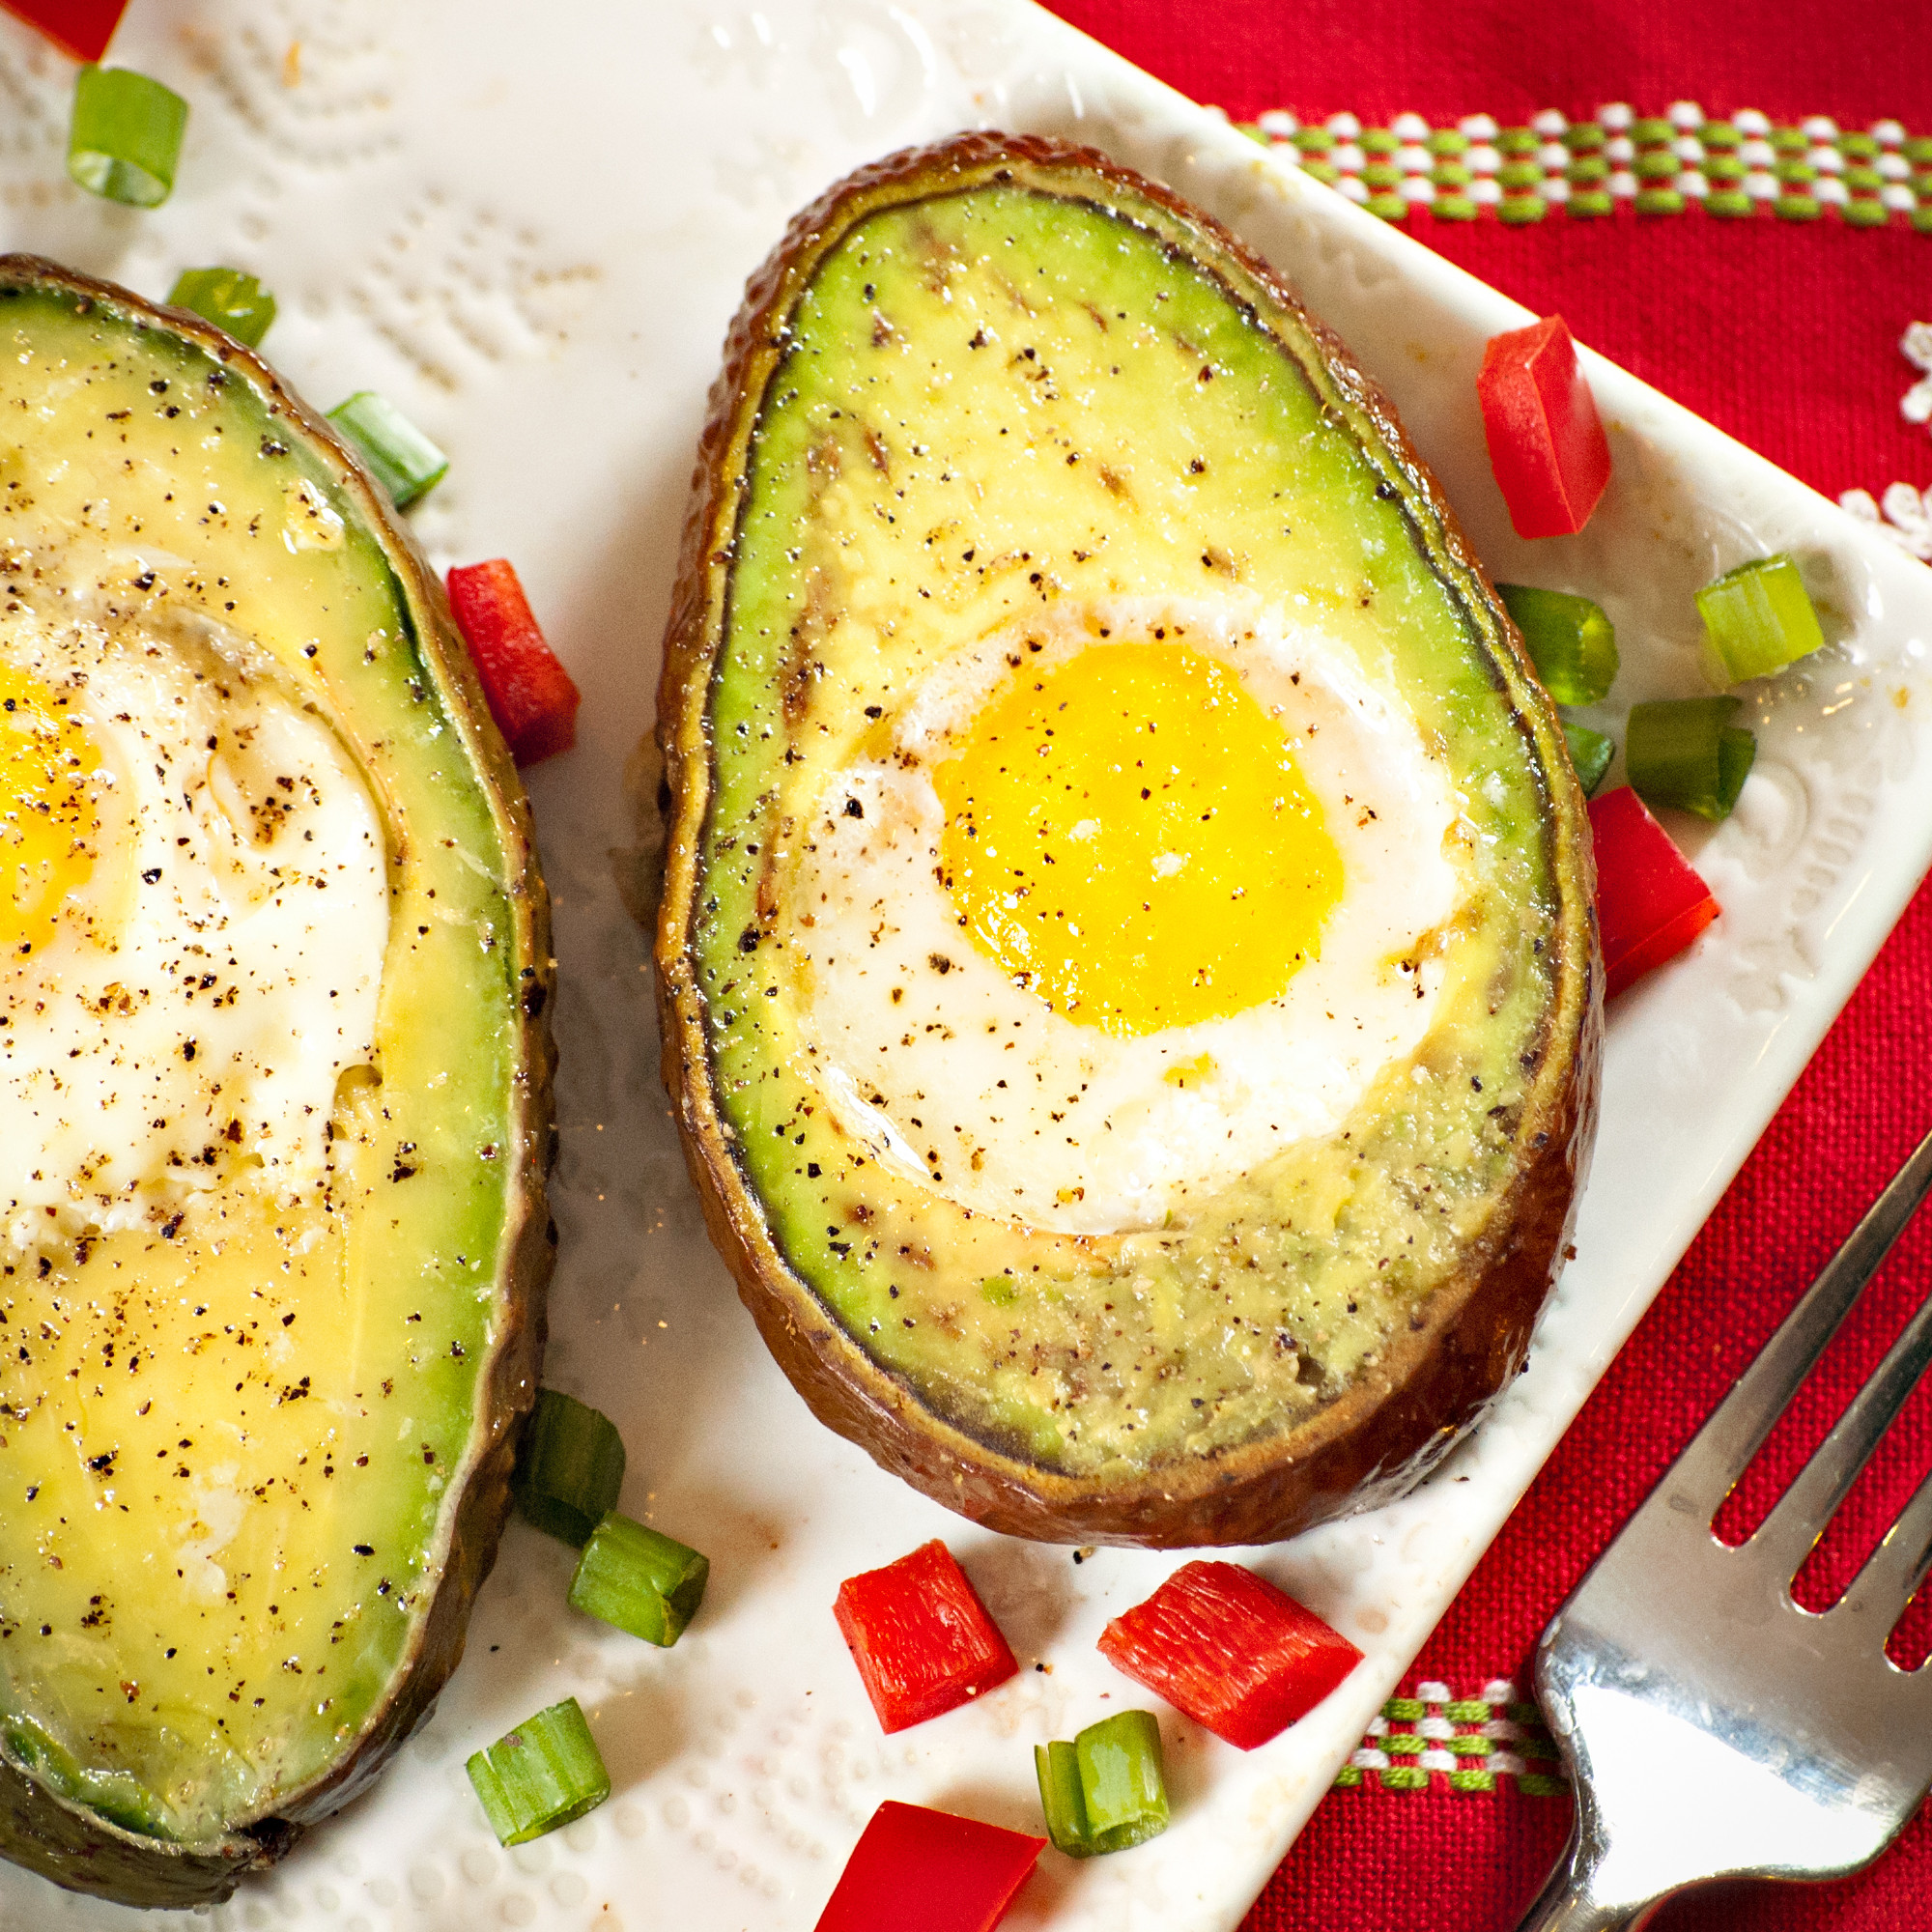 Avocado Egg Recipe: Good Or Gross?